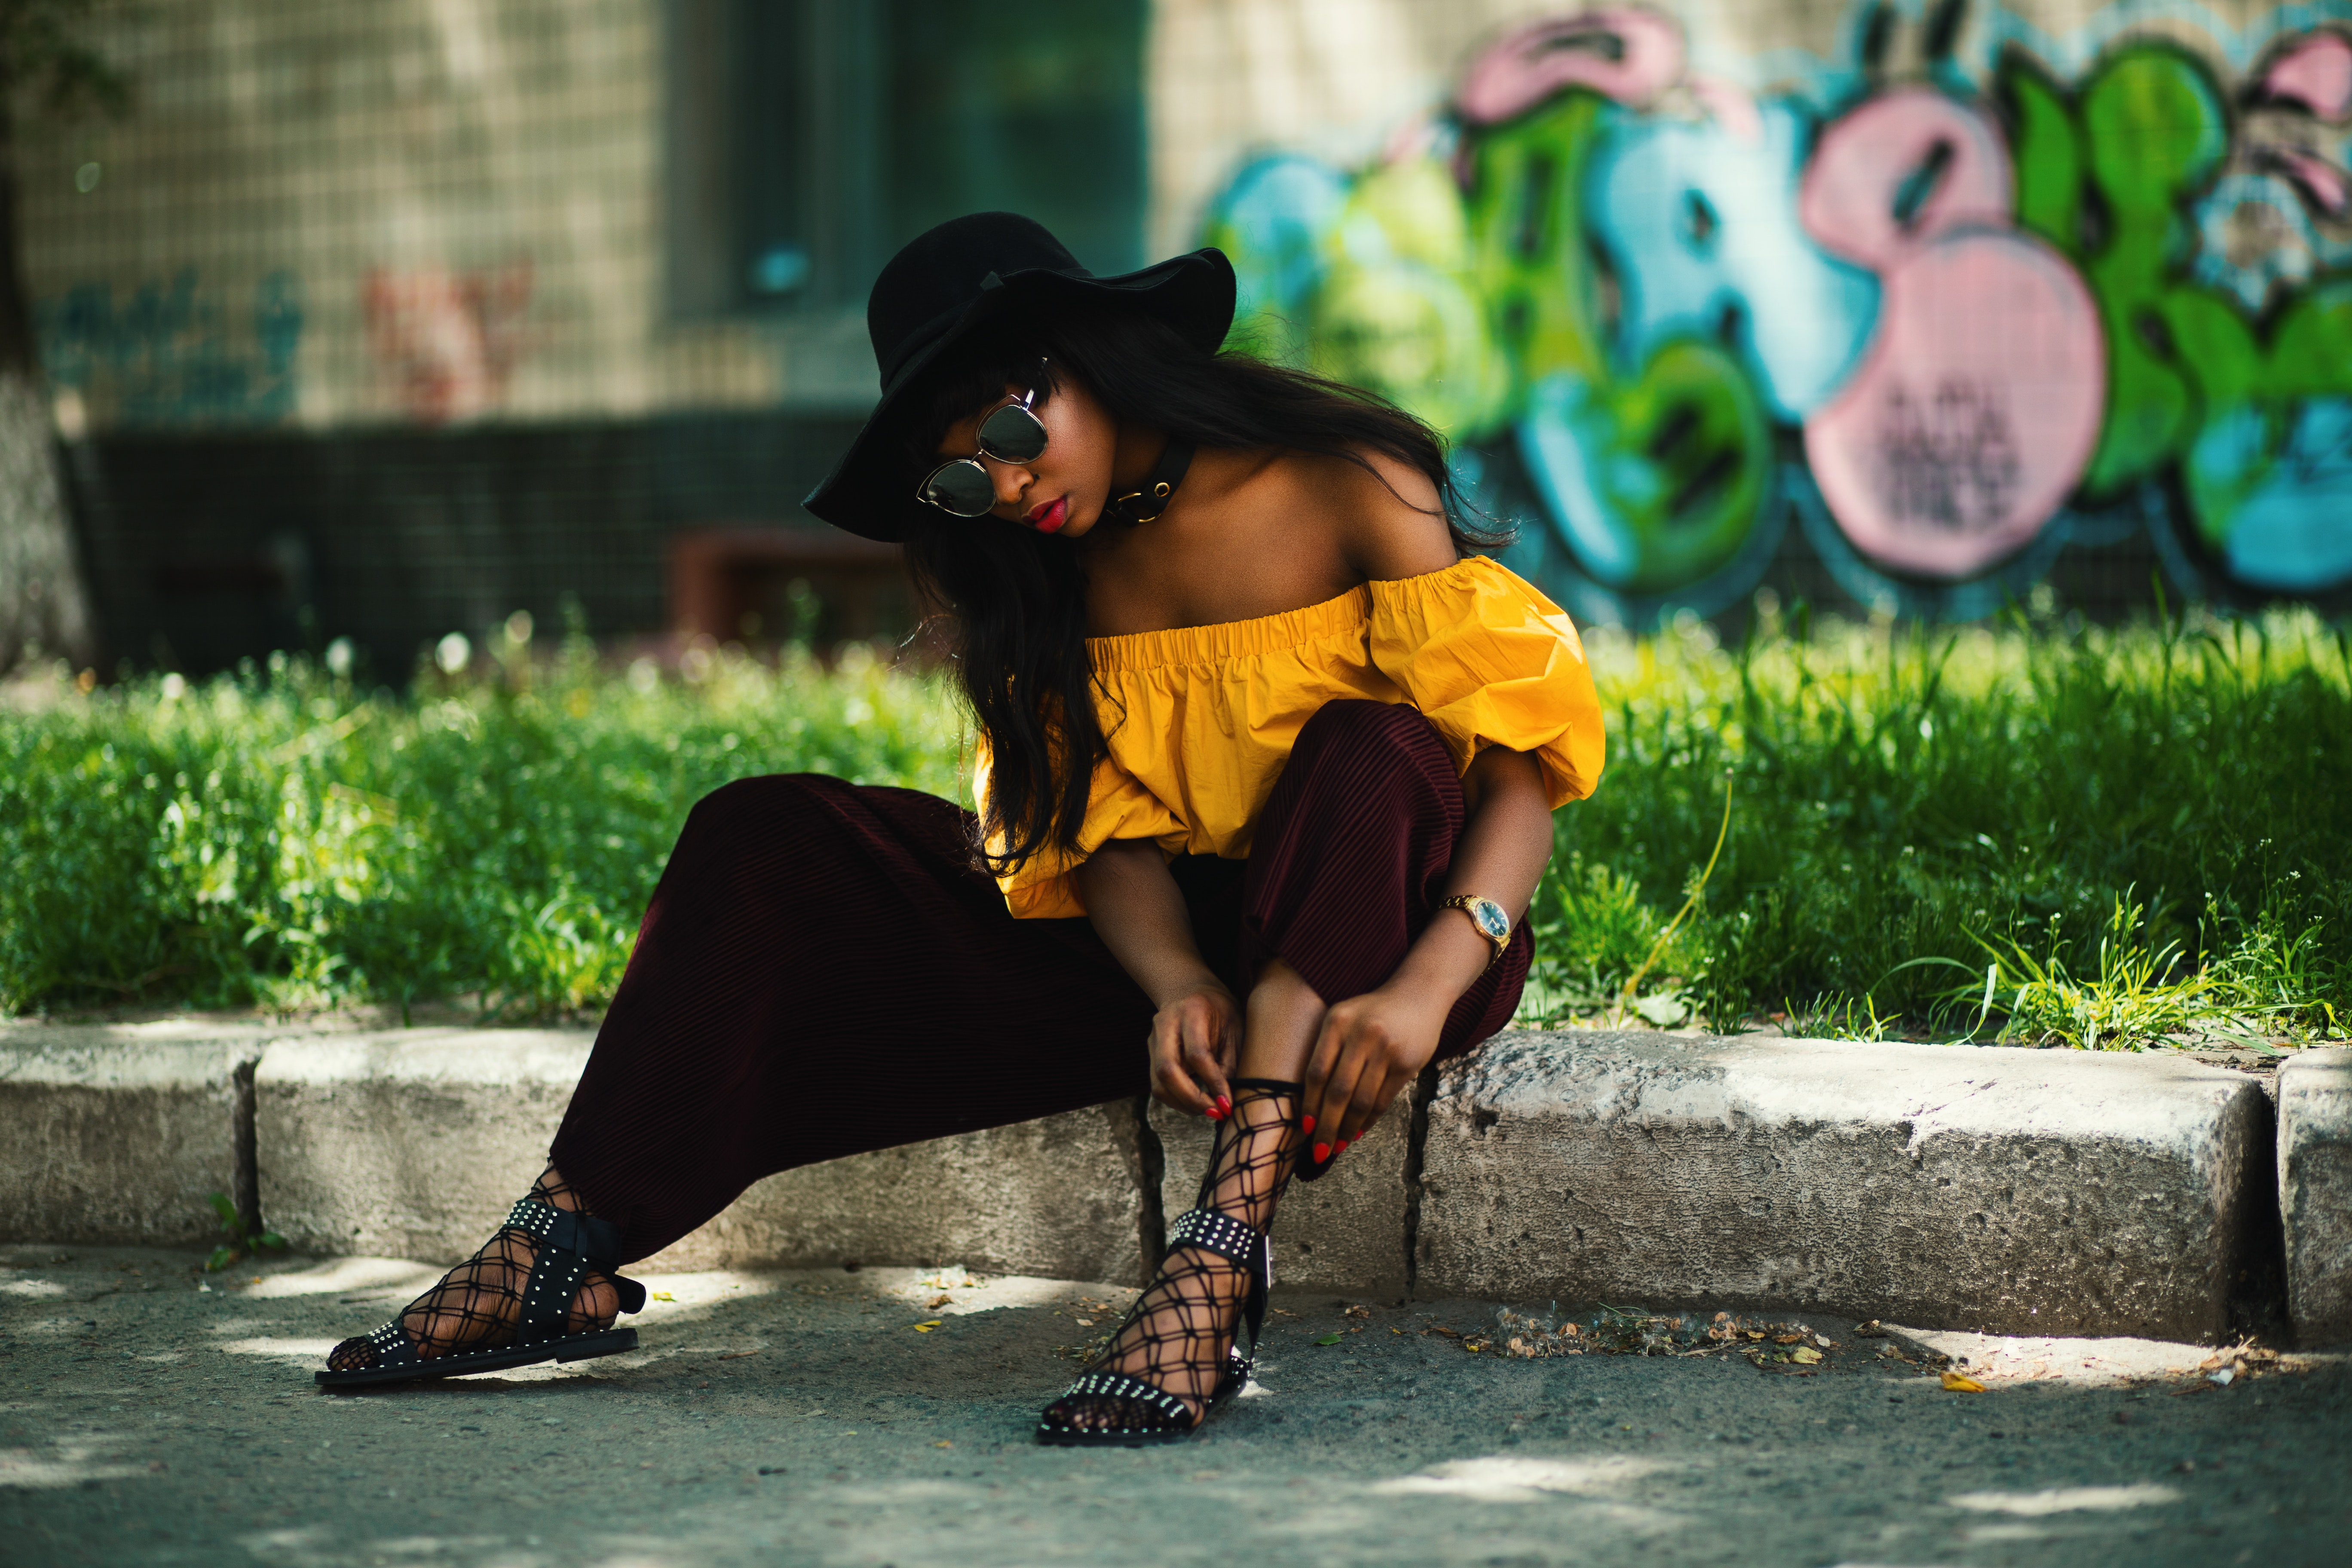 Woman Wearing Yellow Off-shoulder Top and Black Pants Sitting on Sidewalk Fixing Lace Sandals, Beautiful, Park, Yellow, Woman, HQ Photo